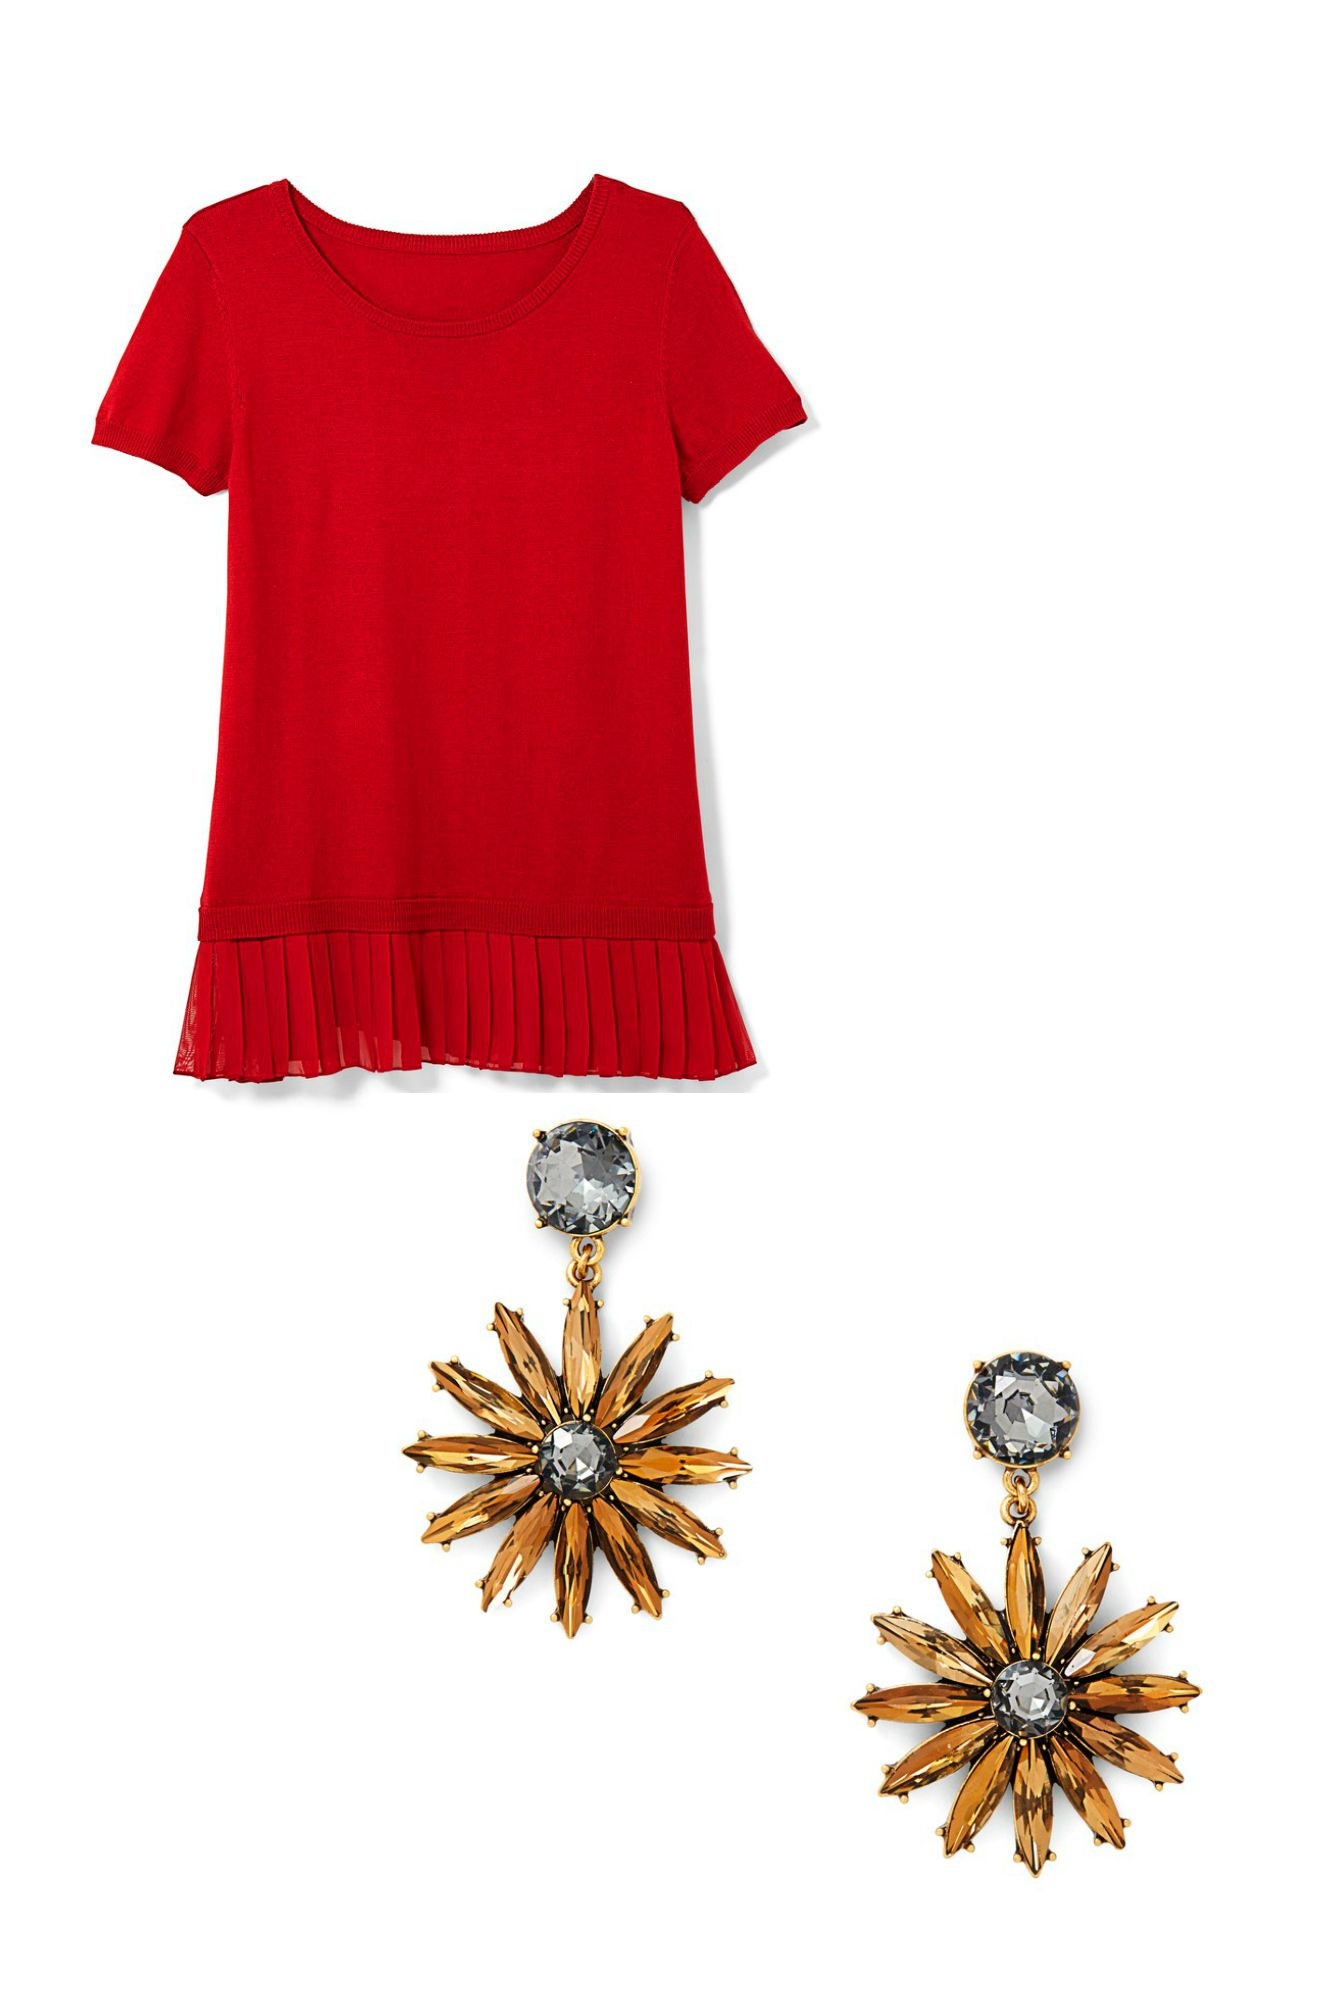 27 Cute Christmas Party Outfits- What to Wear to a Holiday Party